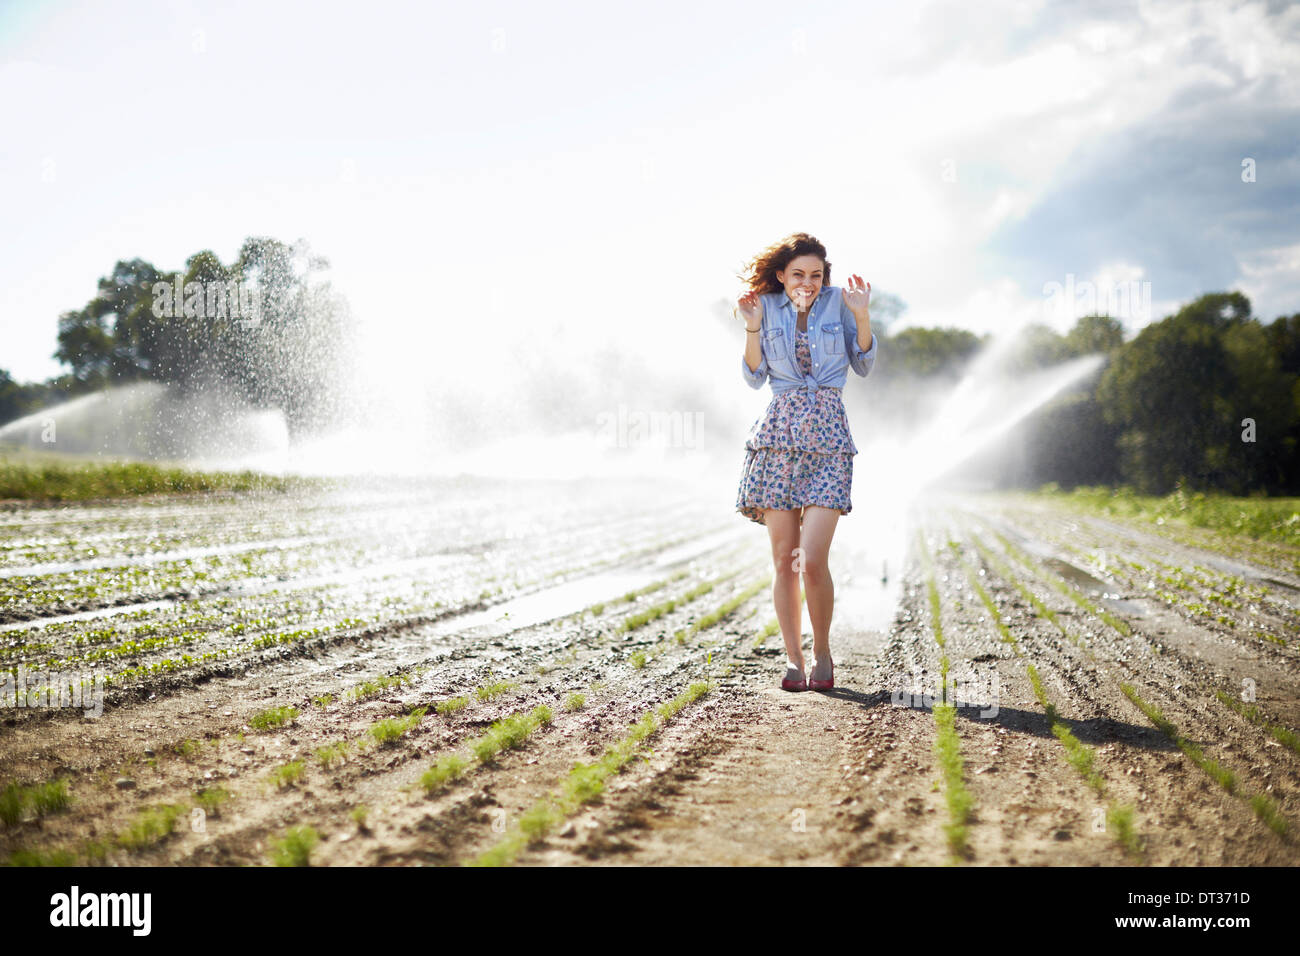 A young woman in denim jacket standing in a field irrigation sprinklers working in the background - Stock Image